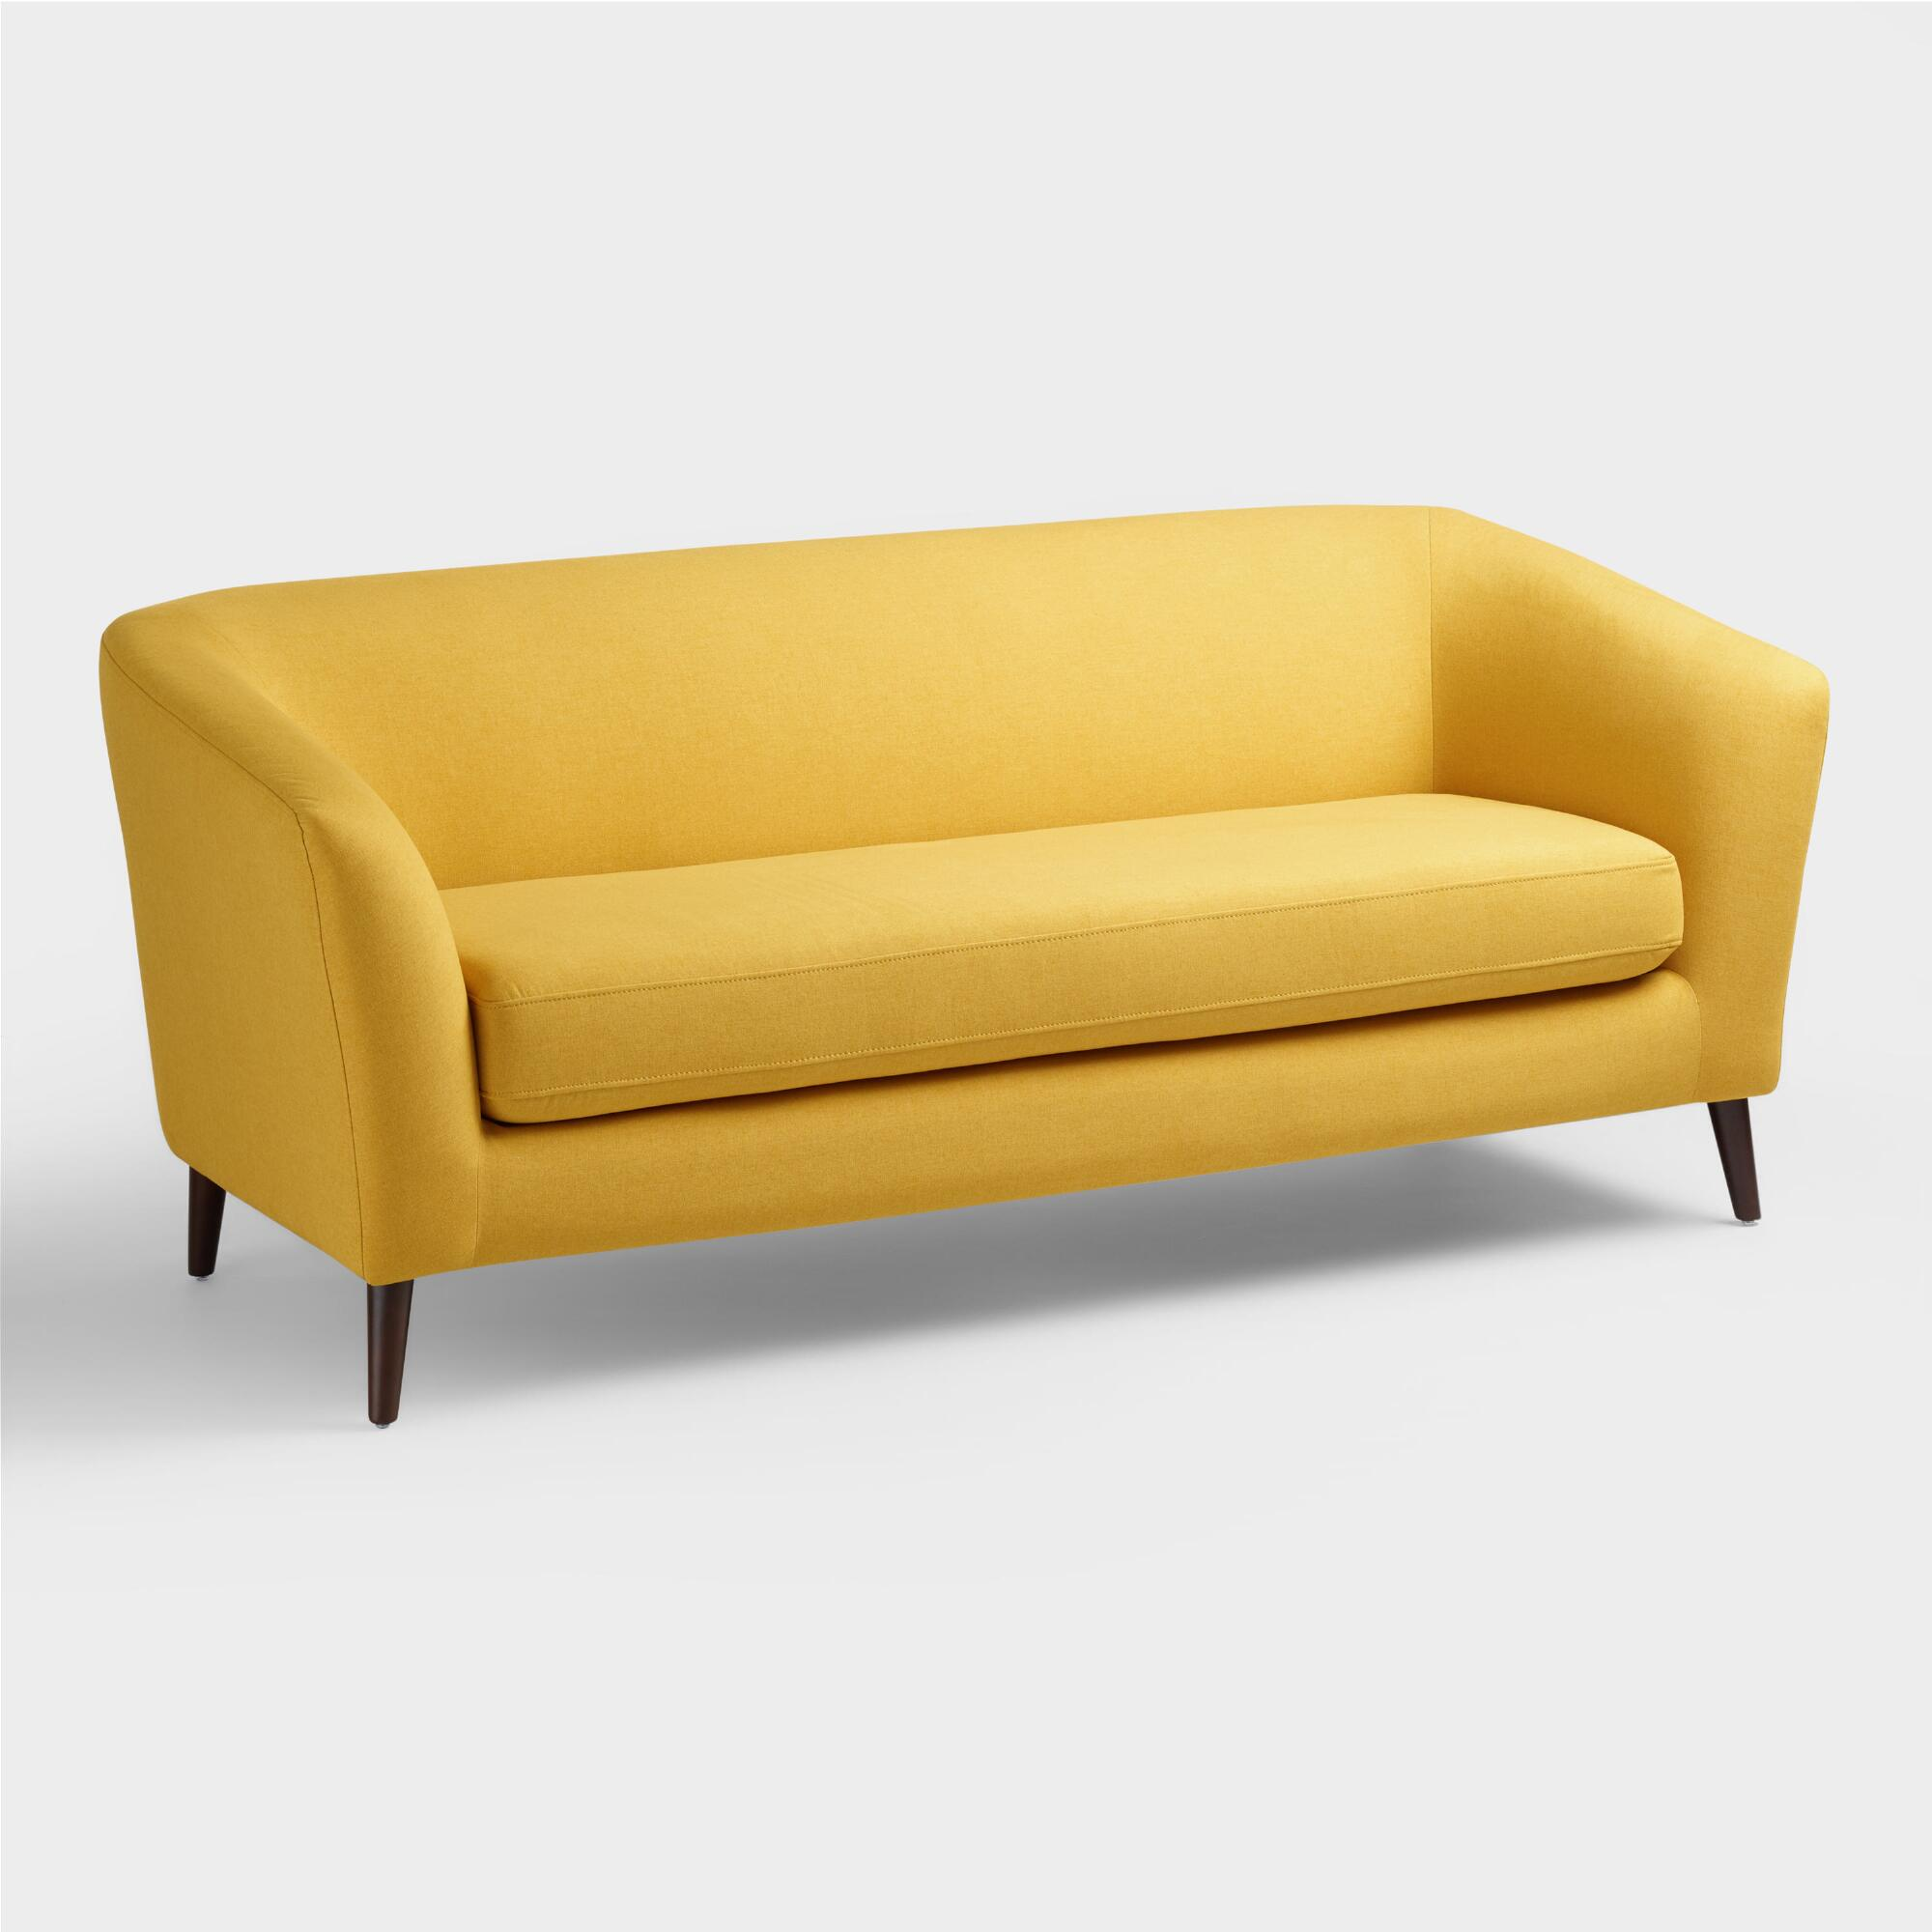 Design Small Space Sofas small space sofas daybeds world market french yellow marni sofa